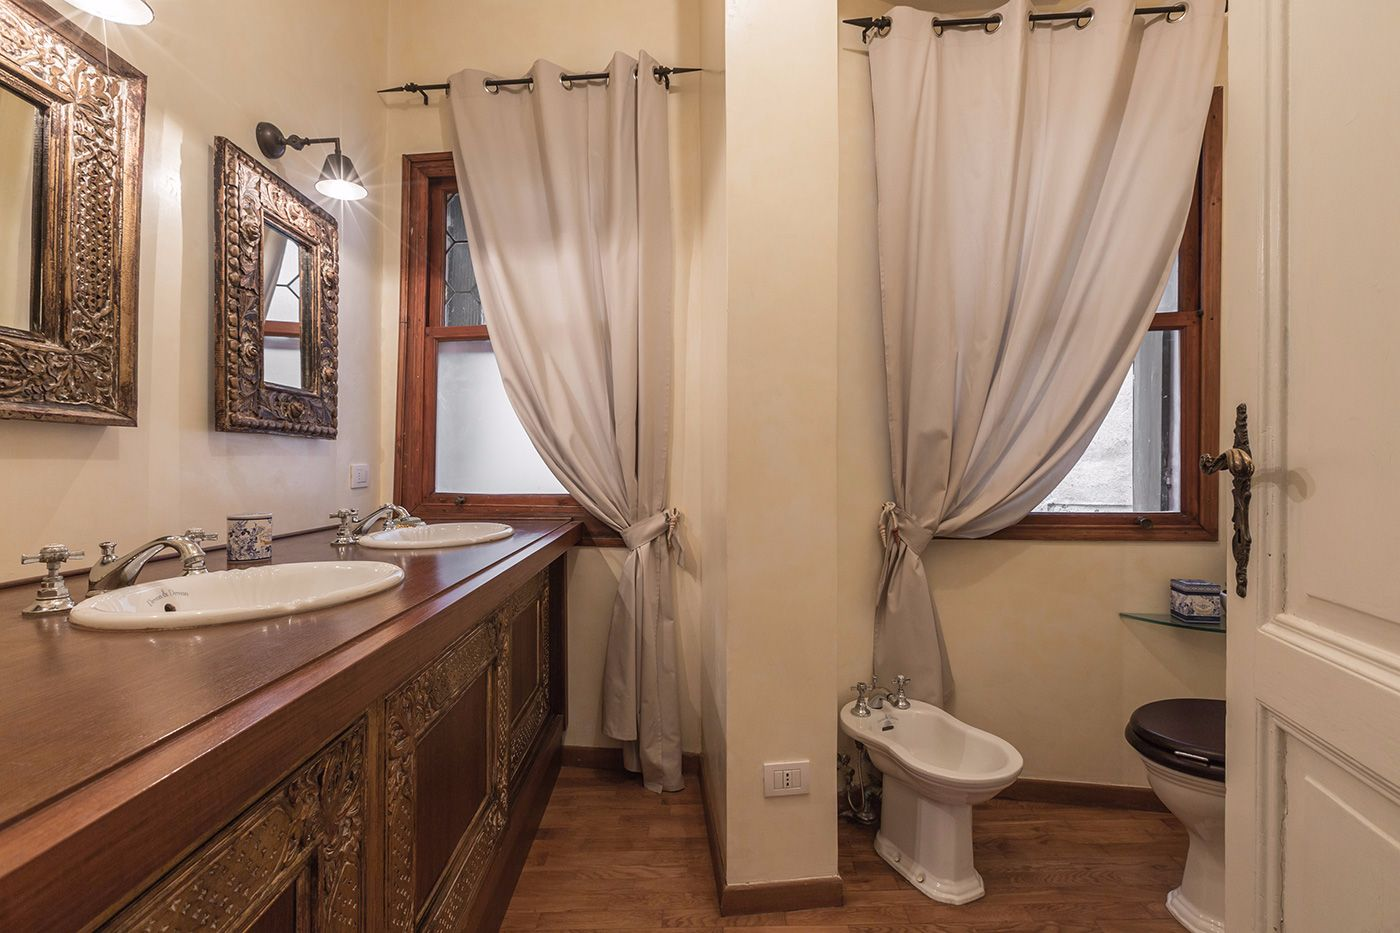 the second bathroom is als very nice with wooden top (need cares)